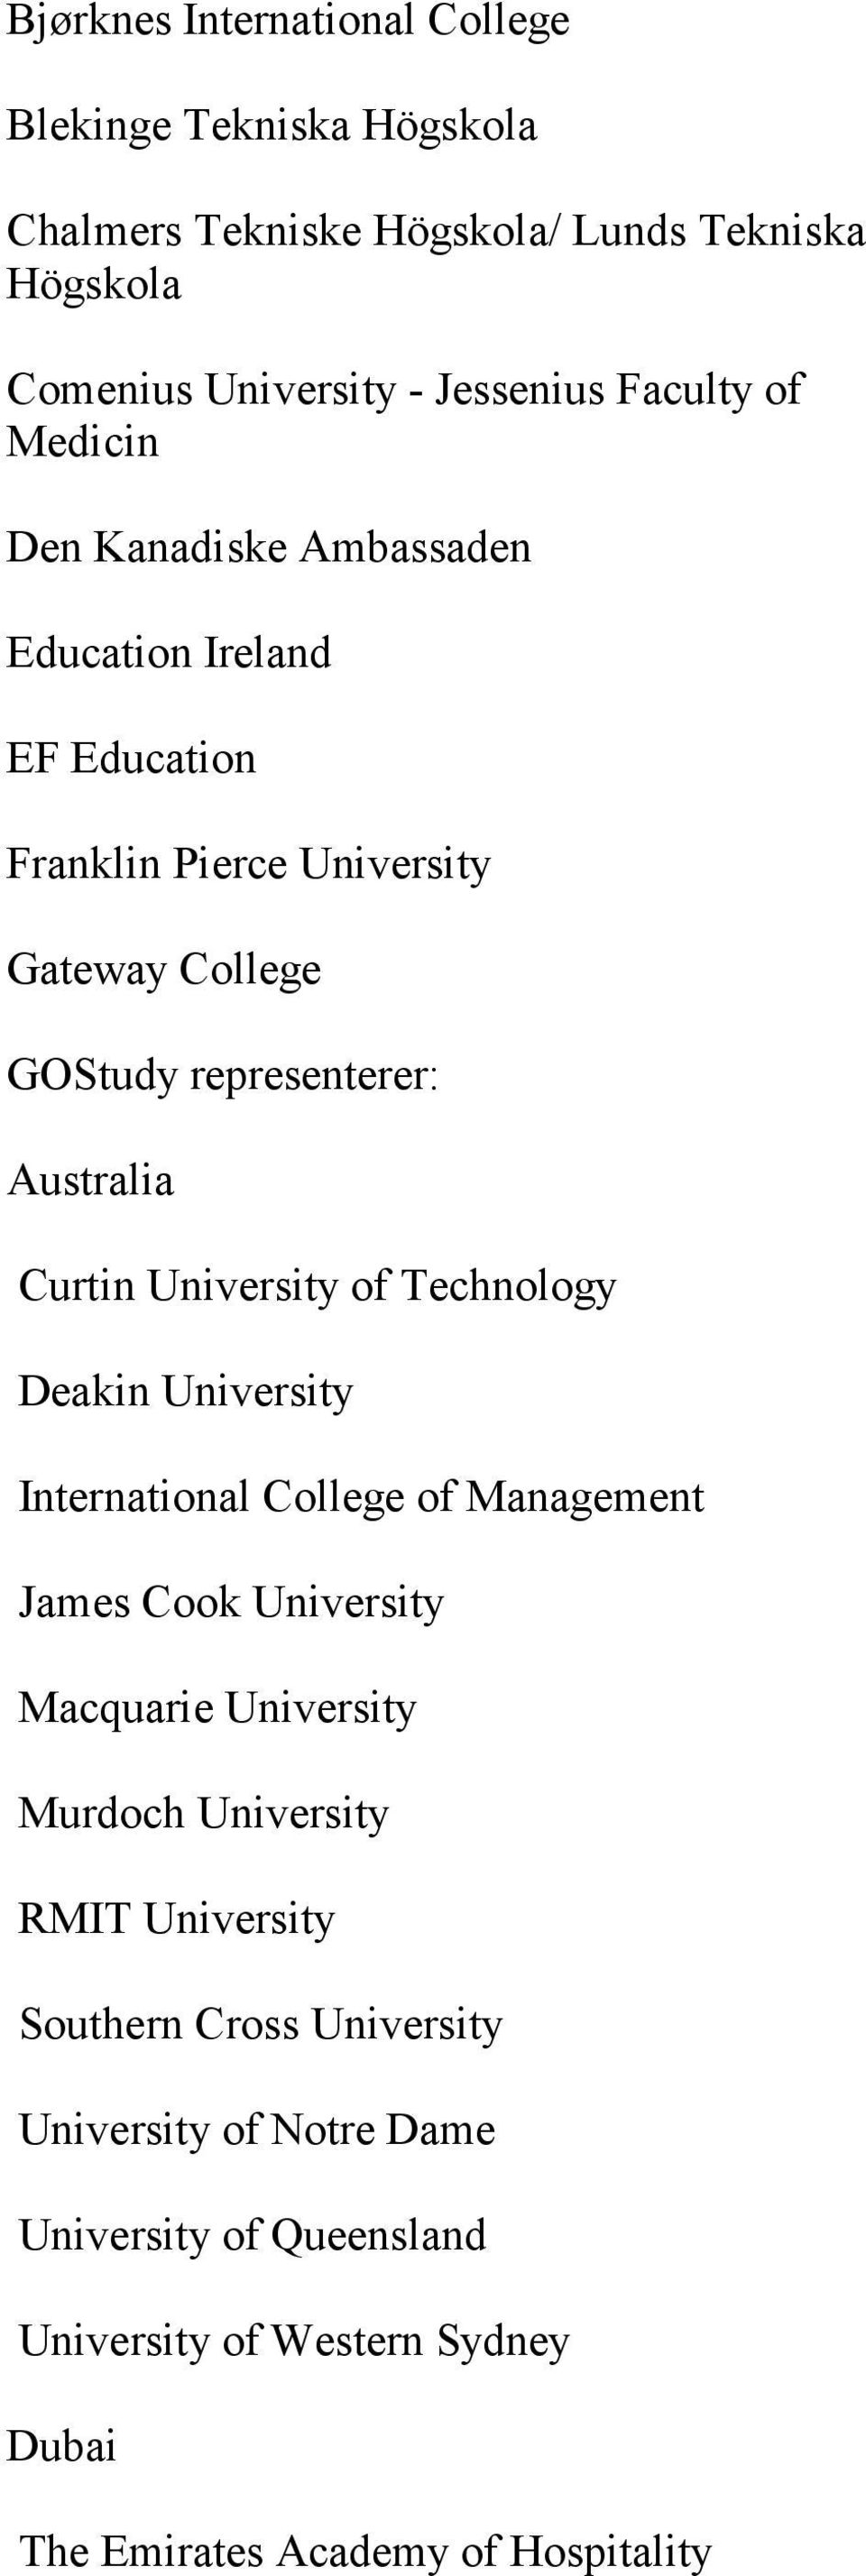 University of Technology Deakin University International College of Management James Cook University Macquarie University Murdoch University RMIT